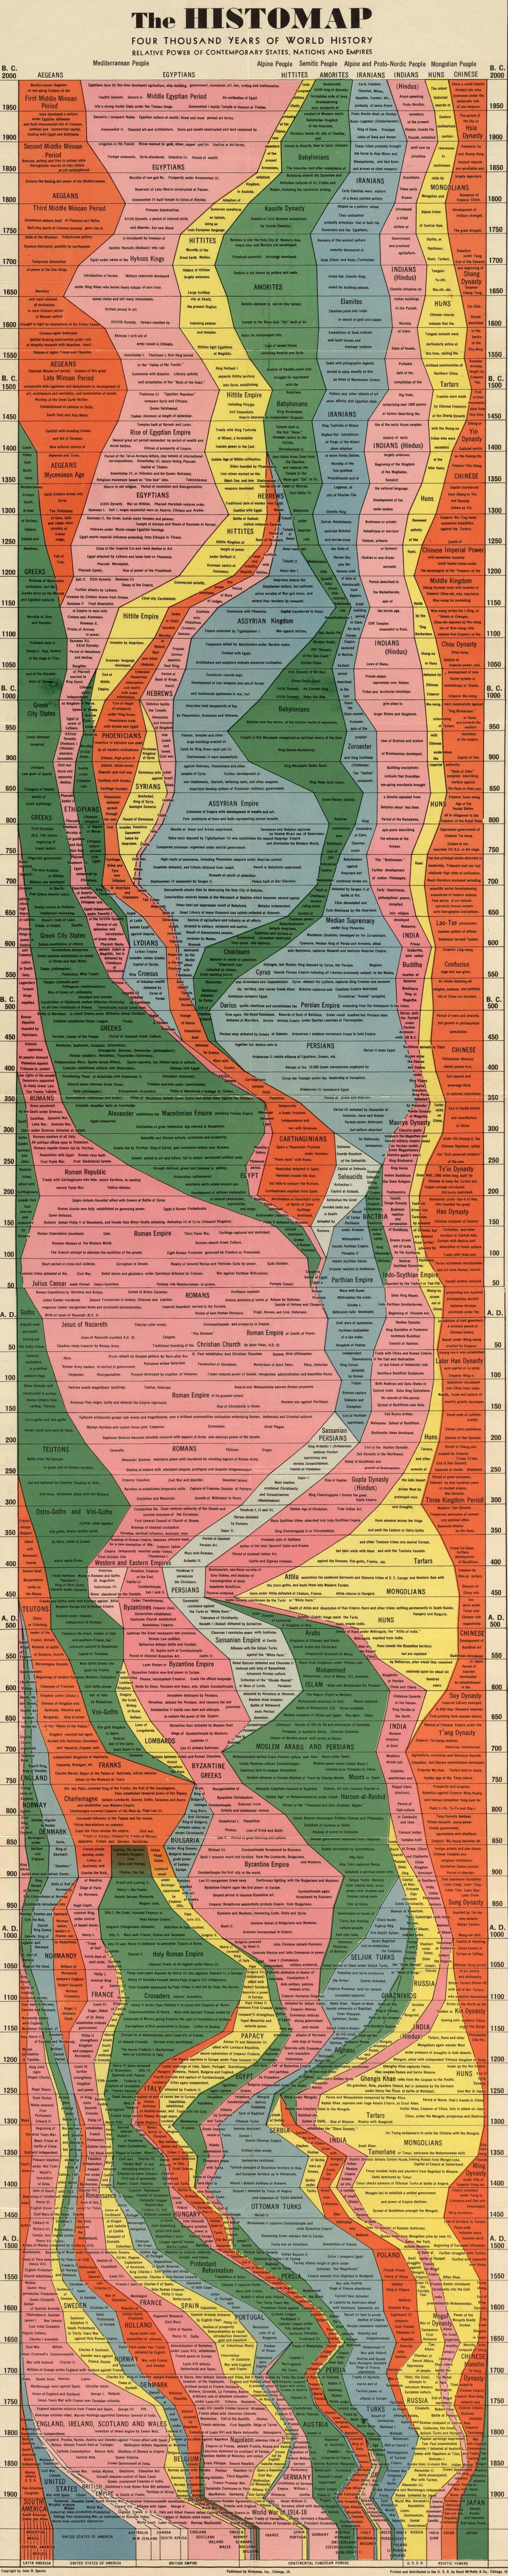 The Histomap - Four Thousand Years of World History by John B. Sparks and Rand McNally and Co.  Well, this is just amazing.